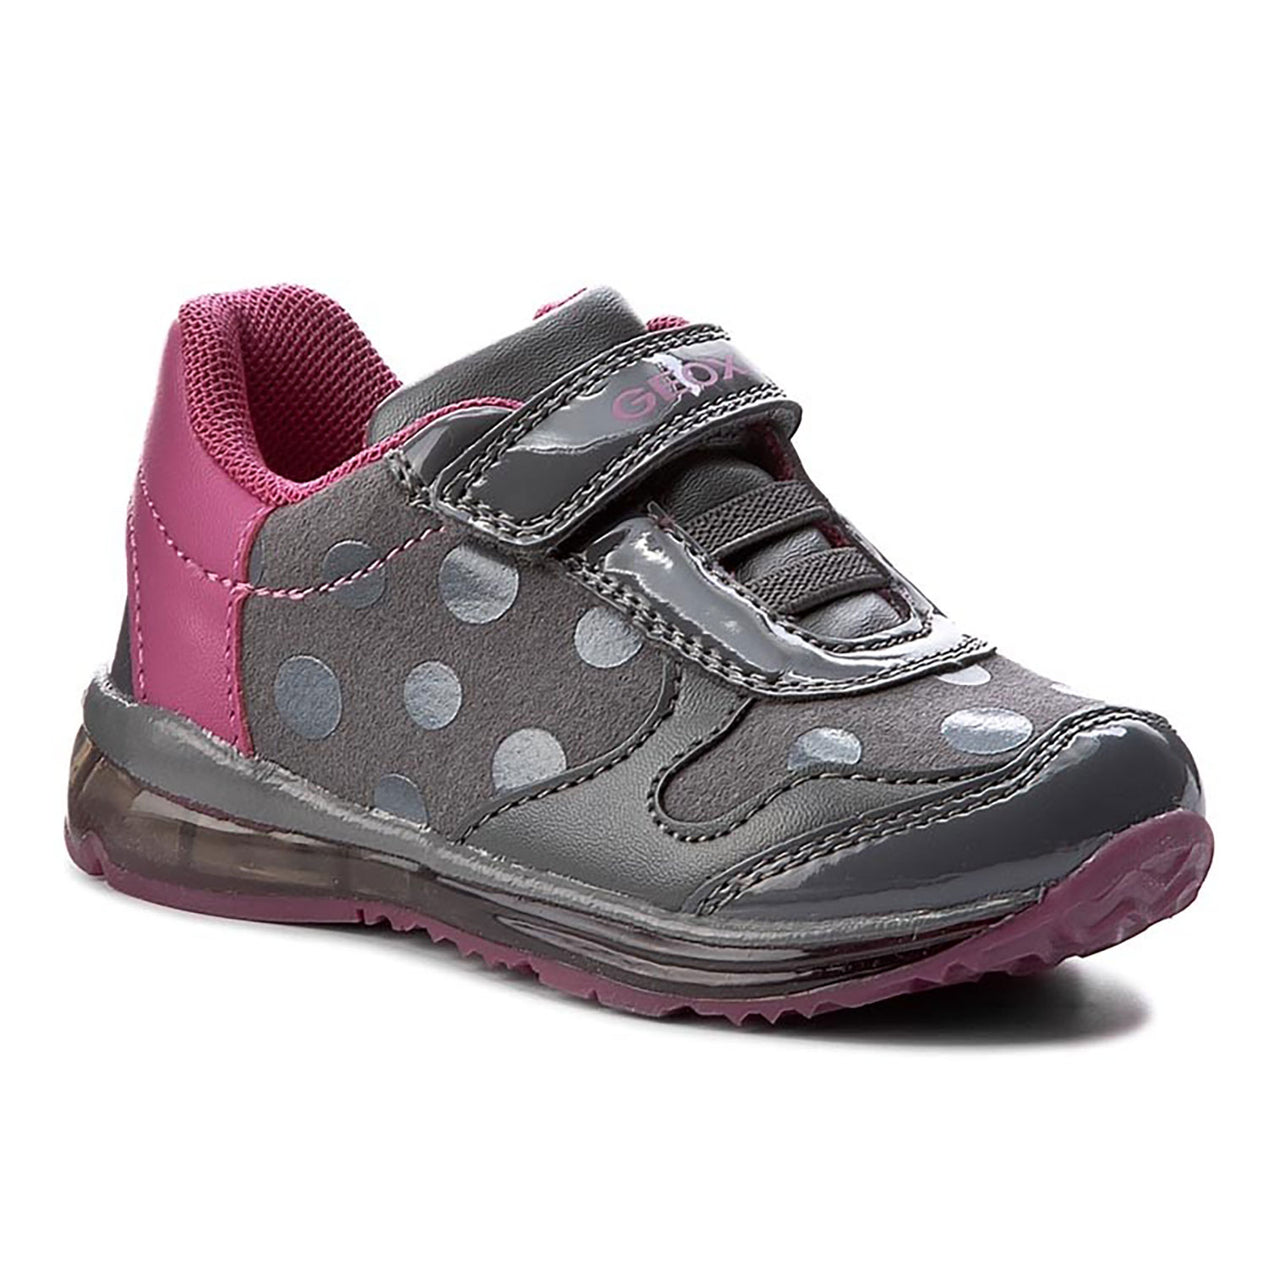 sale usa online lowest price lowest discount Little Girl's Todo Shoes